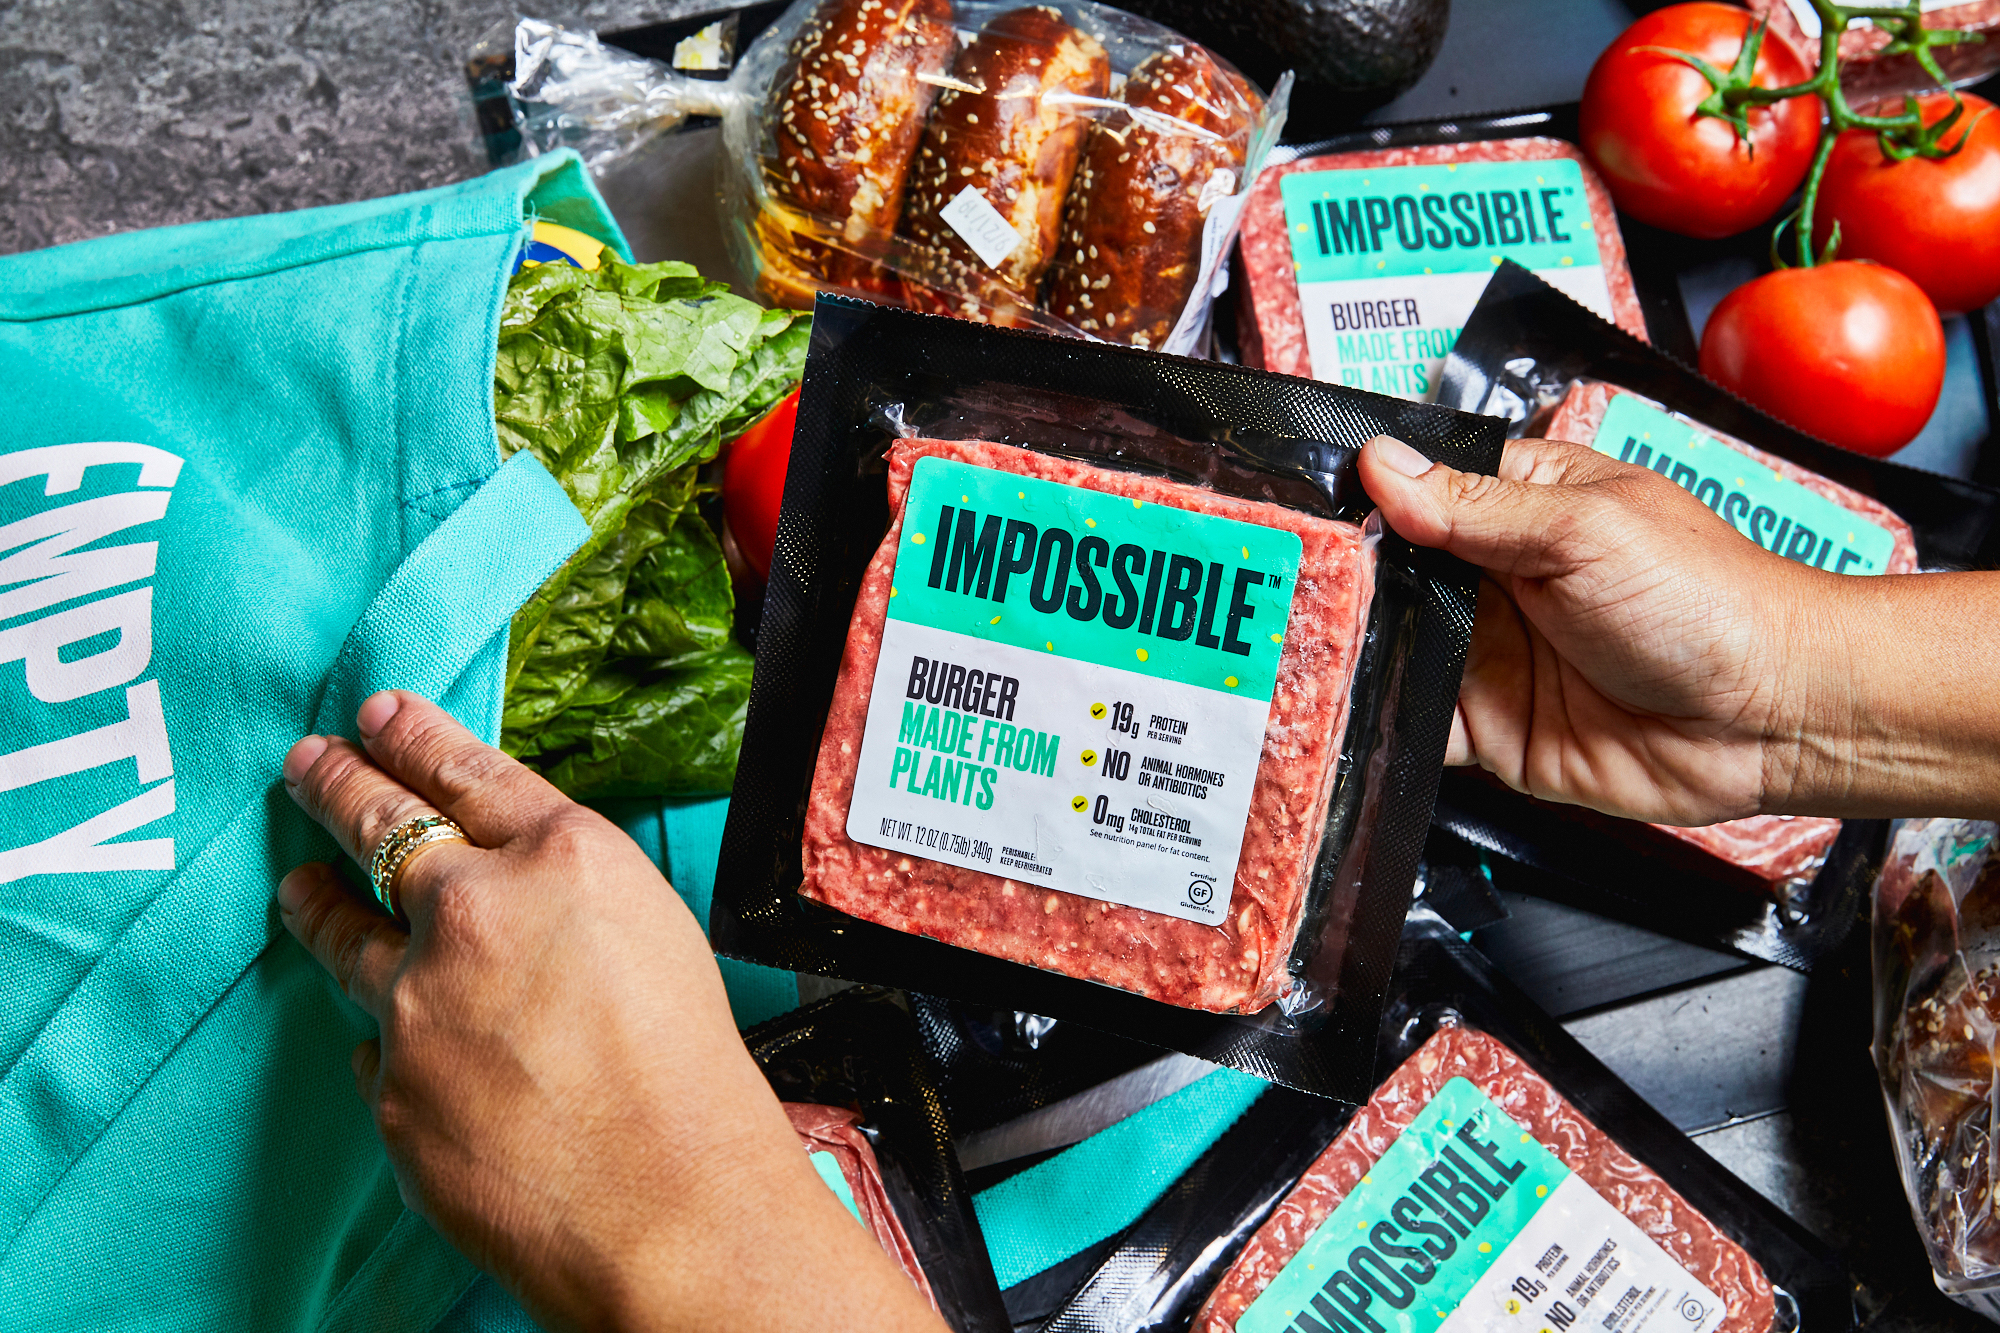 Impossible Foods gets its plant-based burger into Walmart